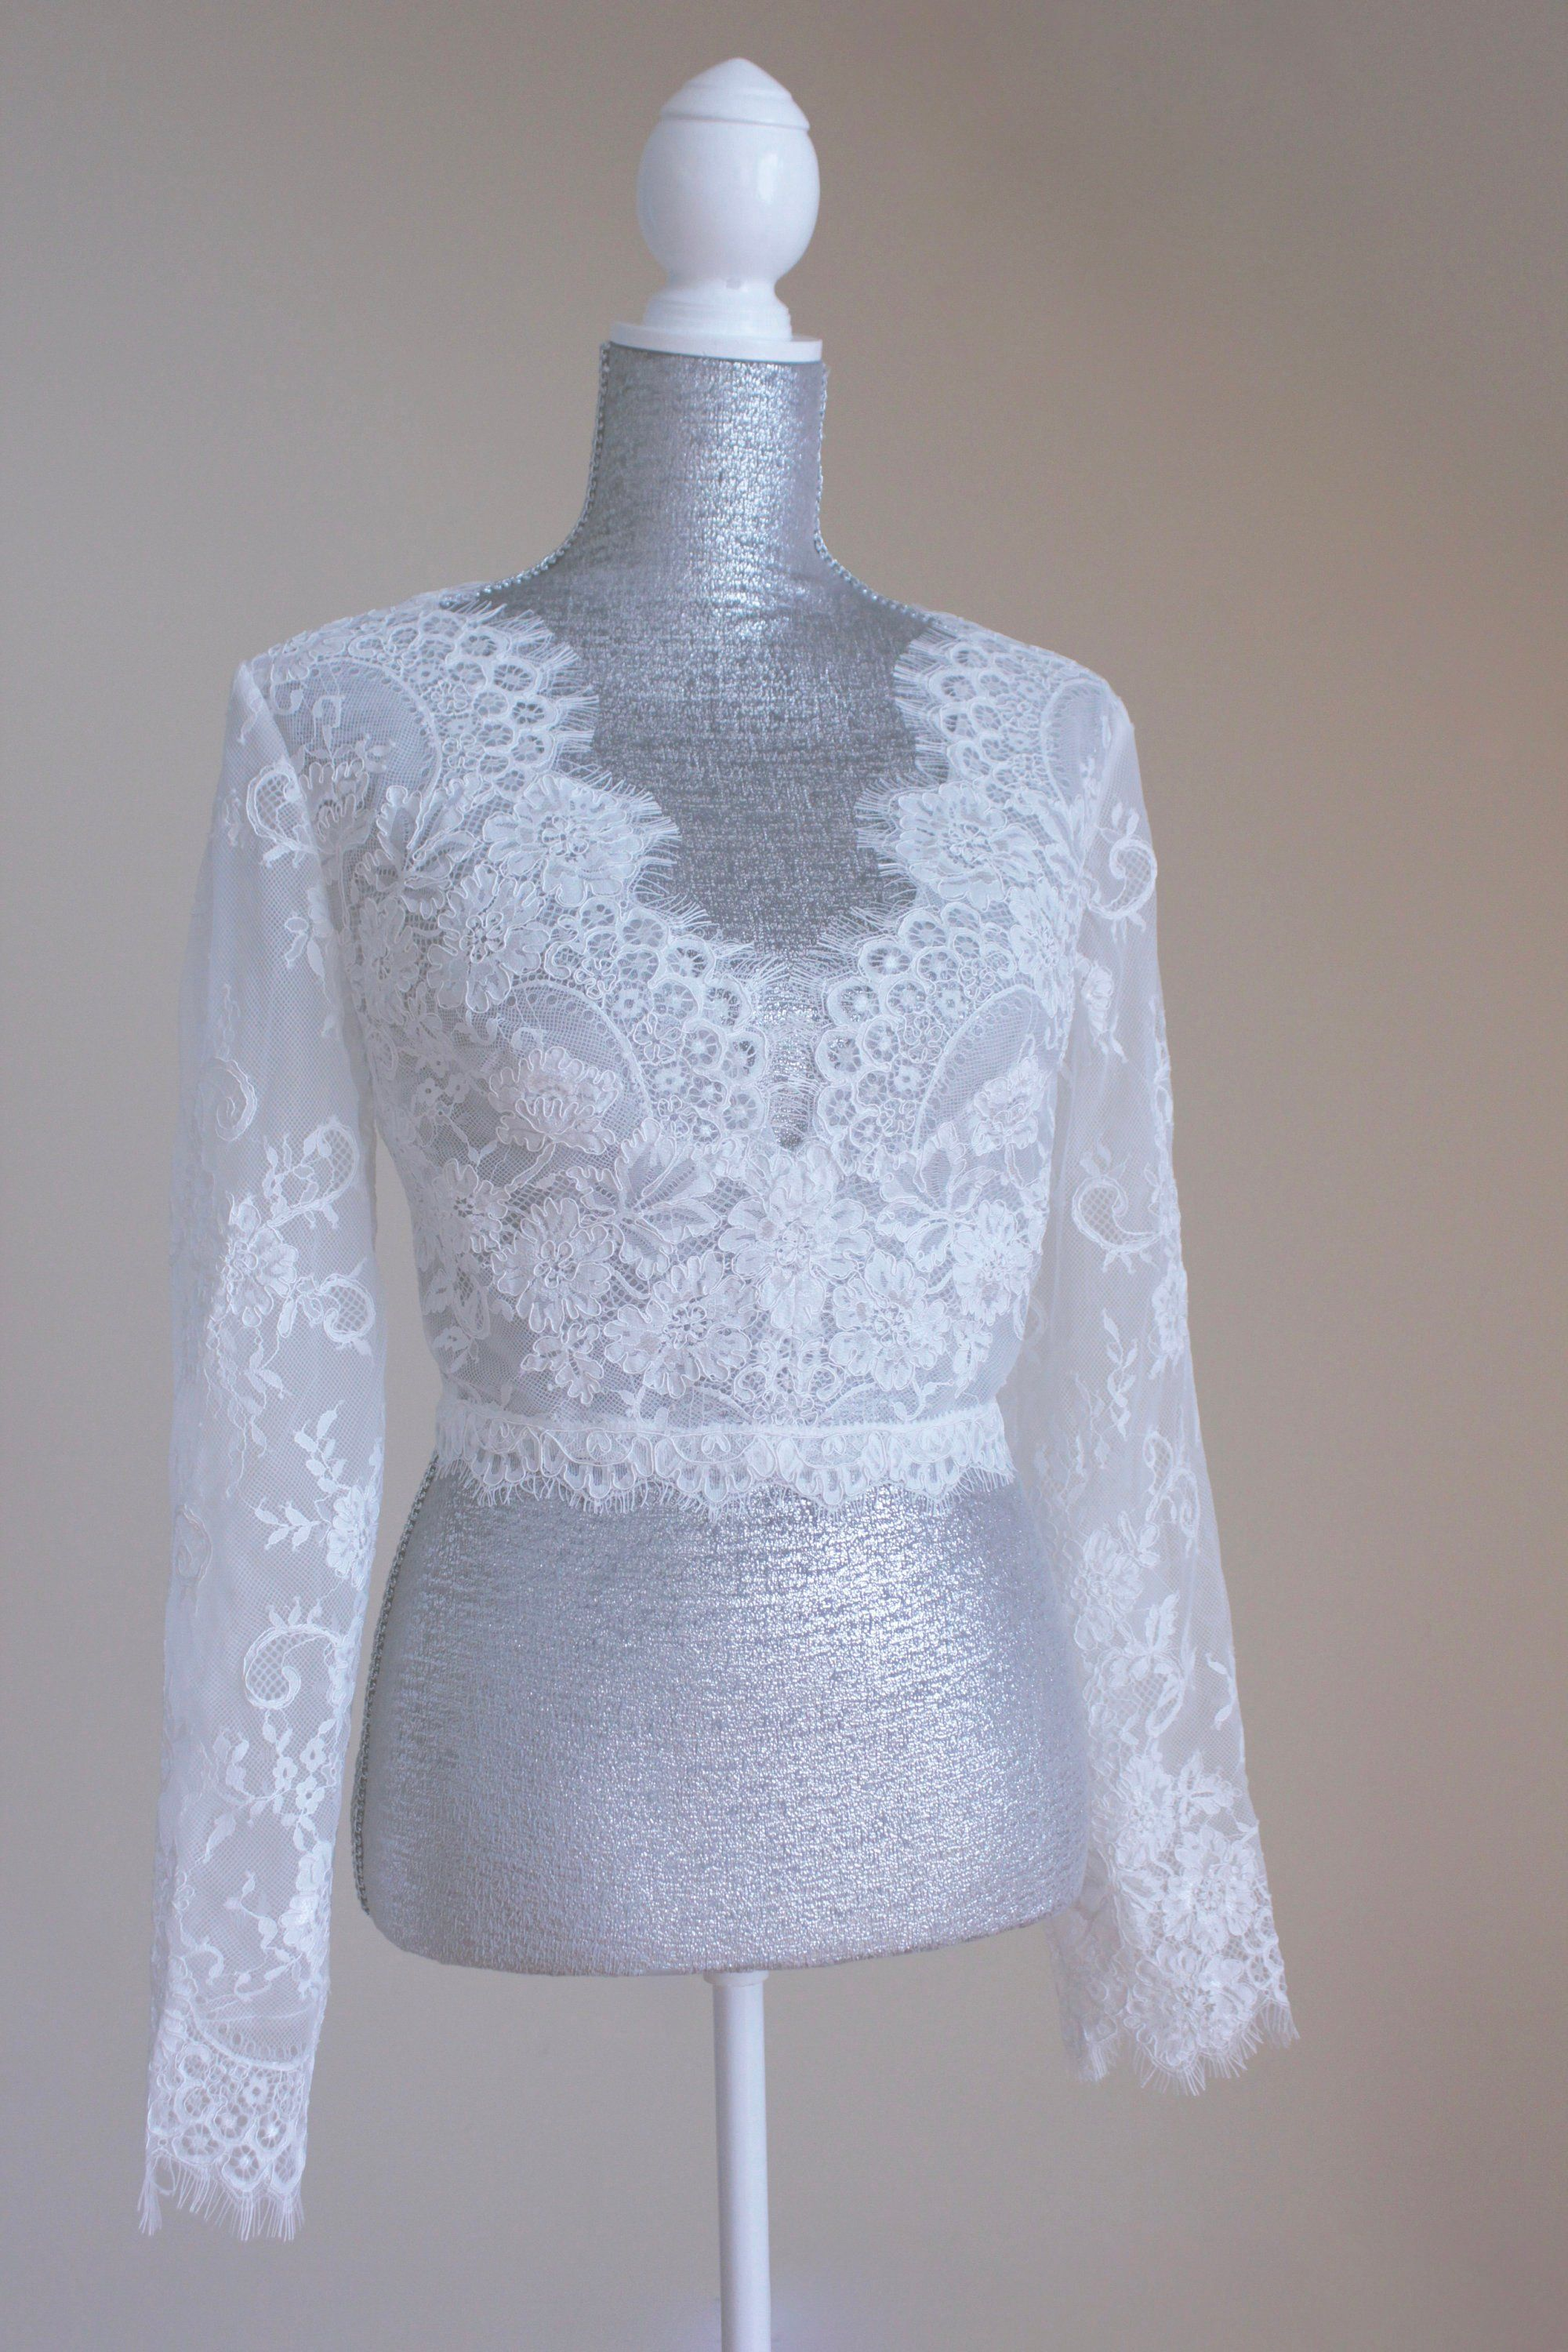 Lace Top Wedding Cover Up Wedding Long Sleeve Top Bridal Etsy In 2021 White Lace Long Sleeve Top Lace Top Long Sleeve Bridal Tops [ 3000 x 2000 Pixel ]